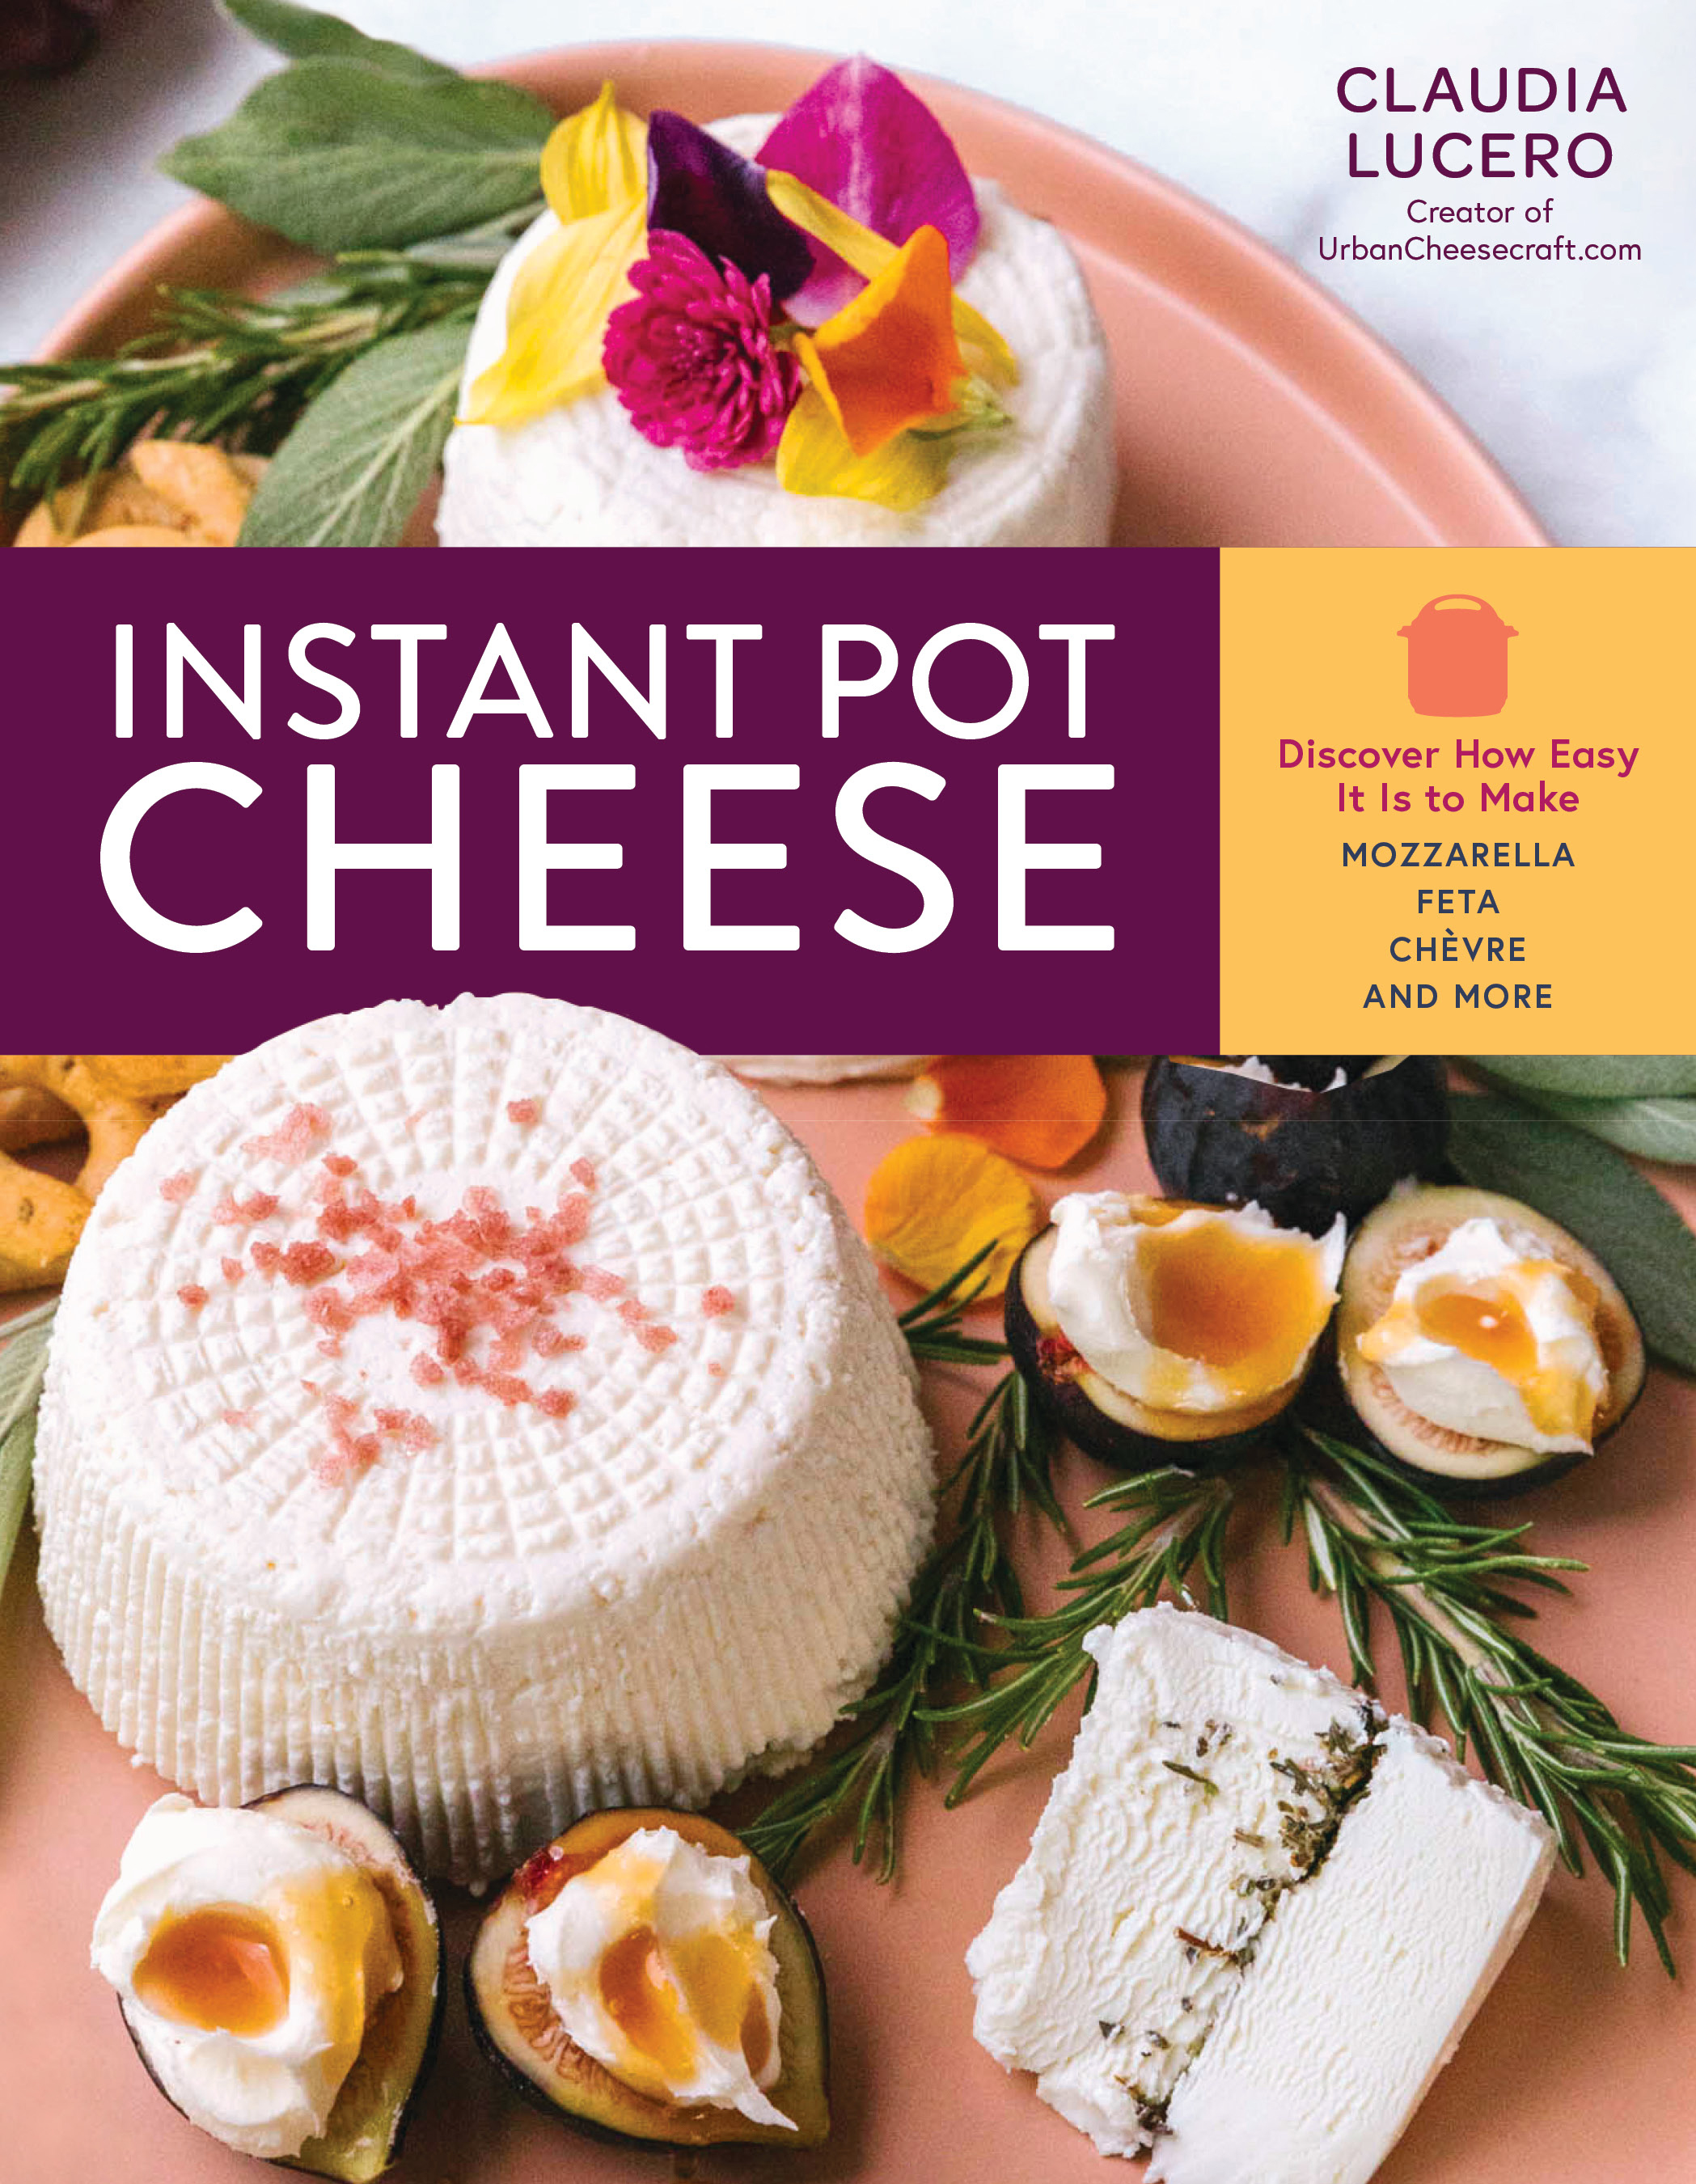 Instant Pot Cheese Discover How Easy It Is to Make Mozzarella, Feta, Chevre, and More - Claudia Lucero